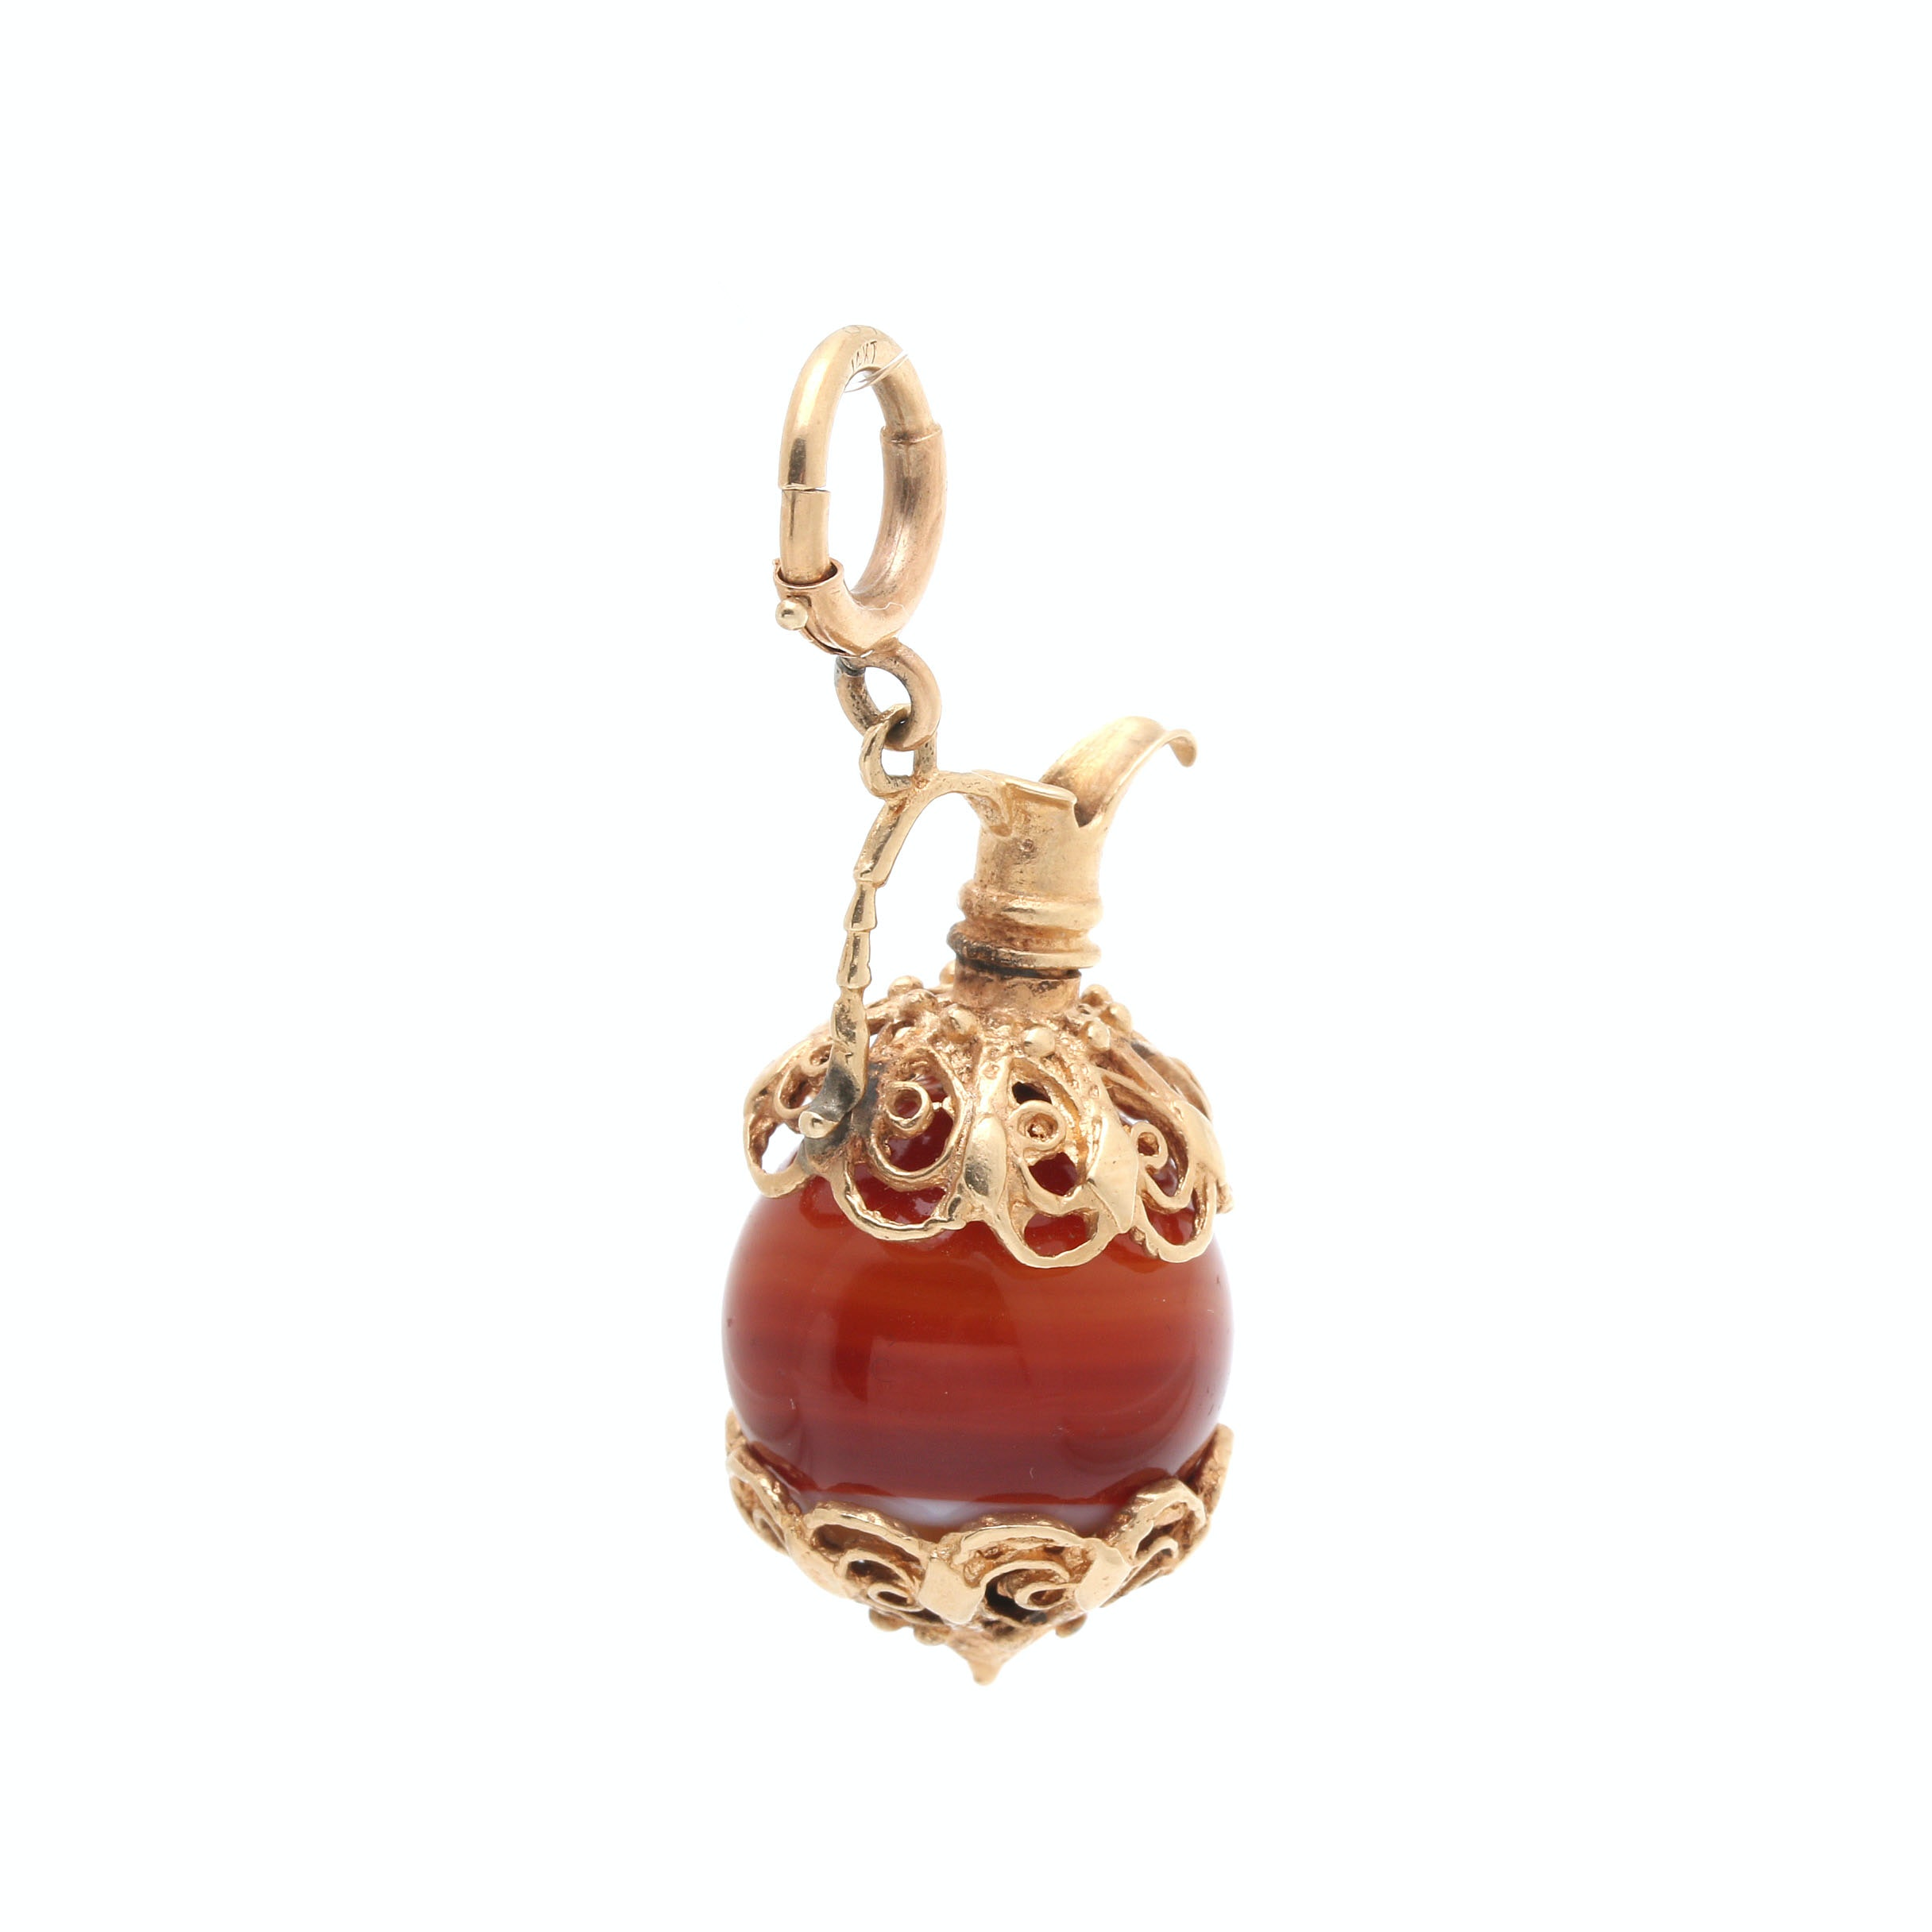 14K Yellow Gold Agate Urn Pendant/Charm